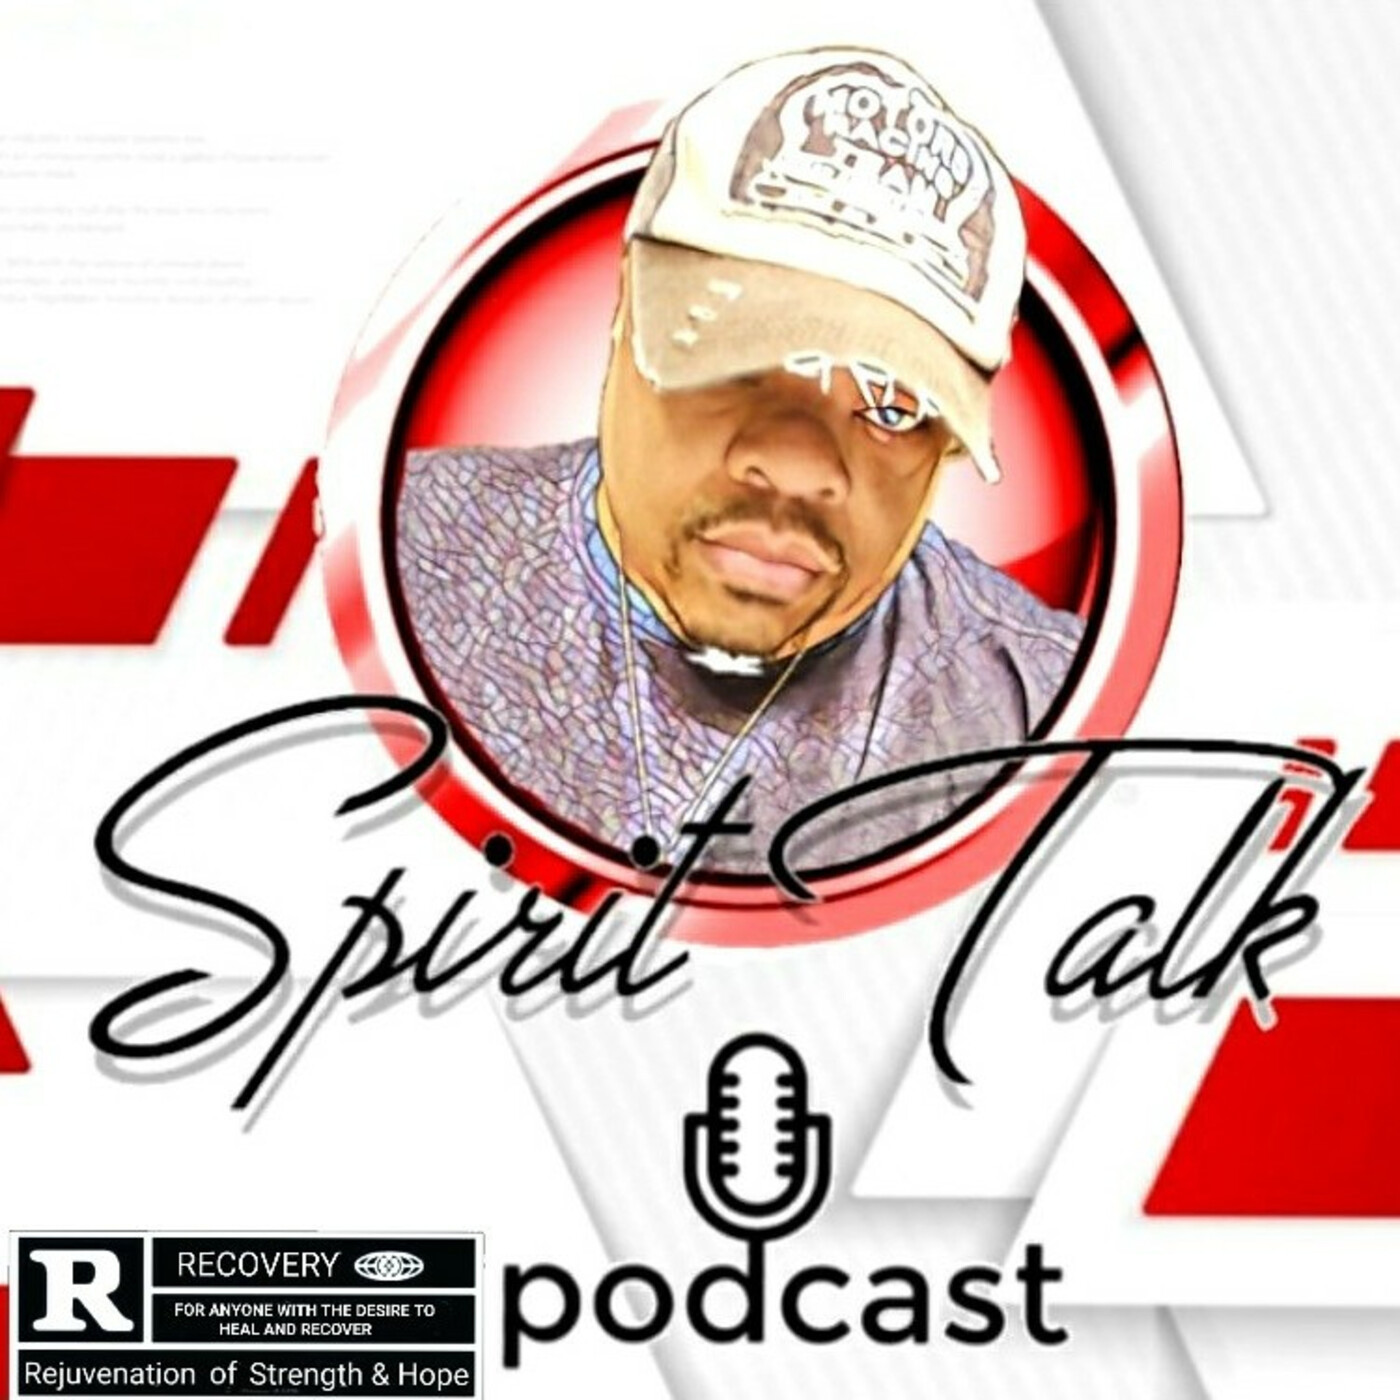 Introduction to The Spirit Talk Podcast